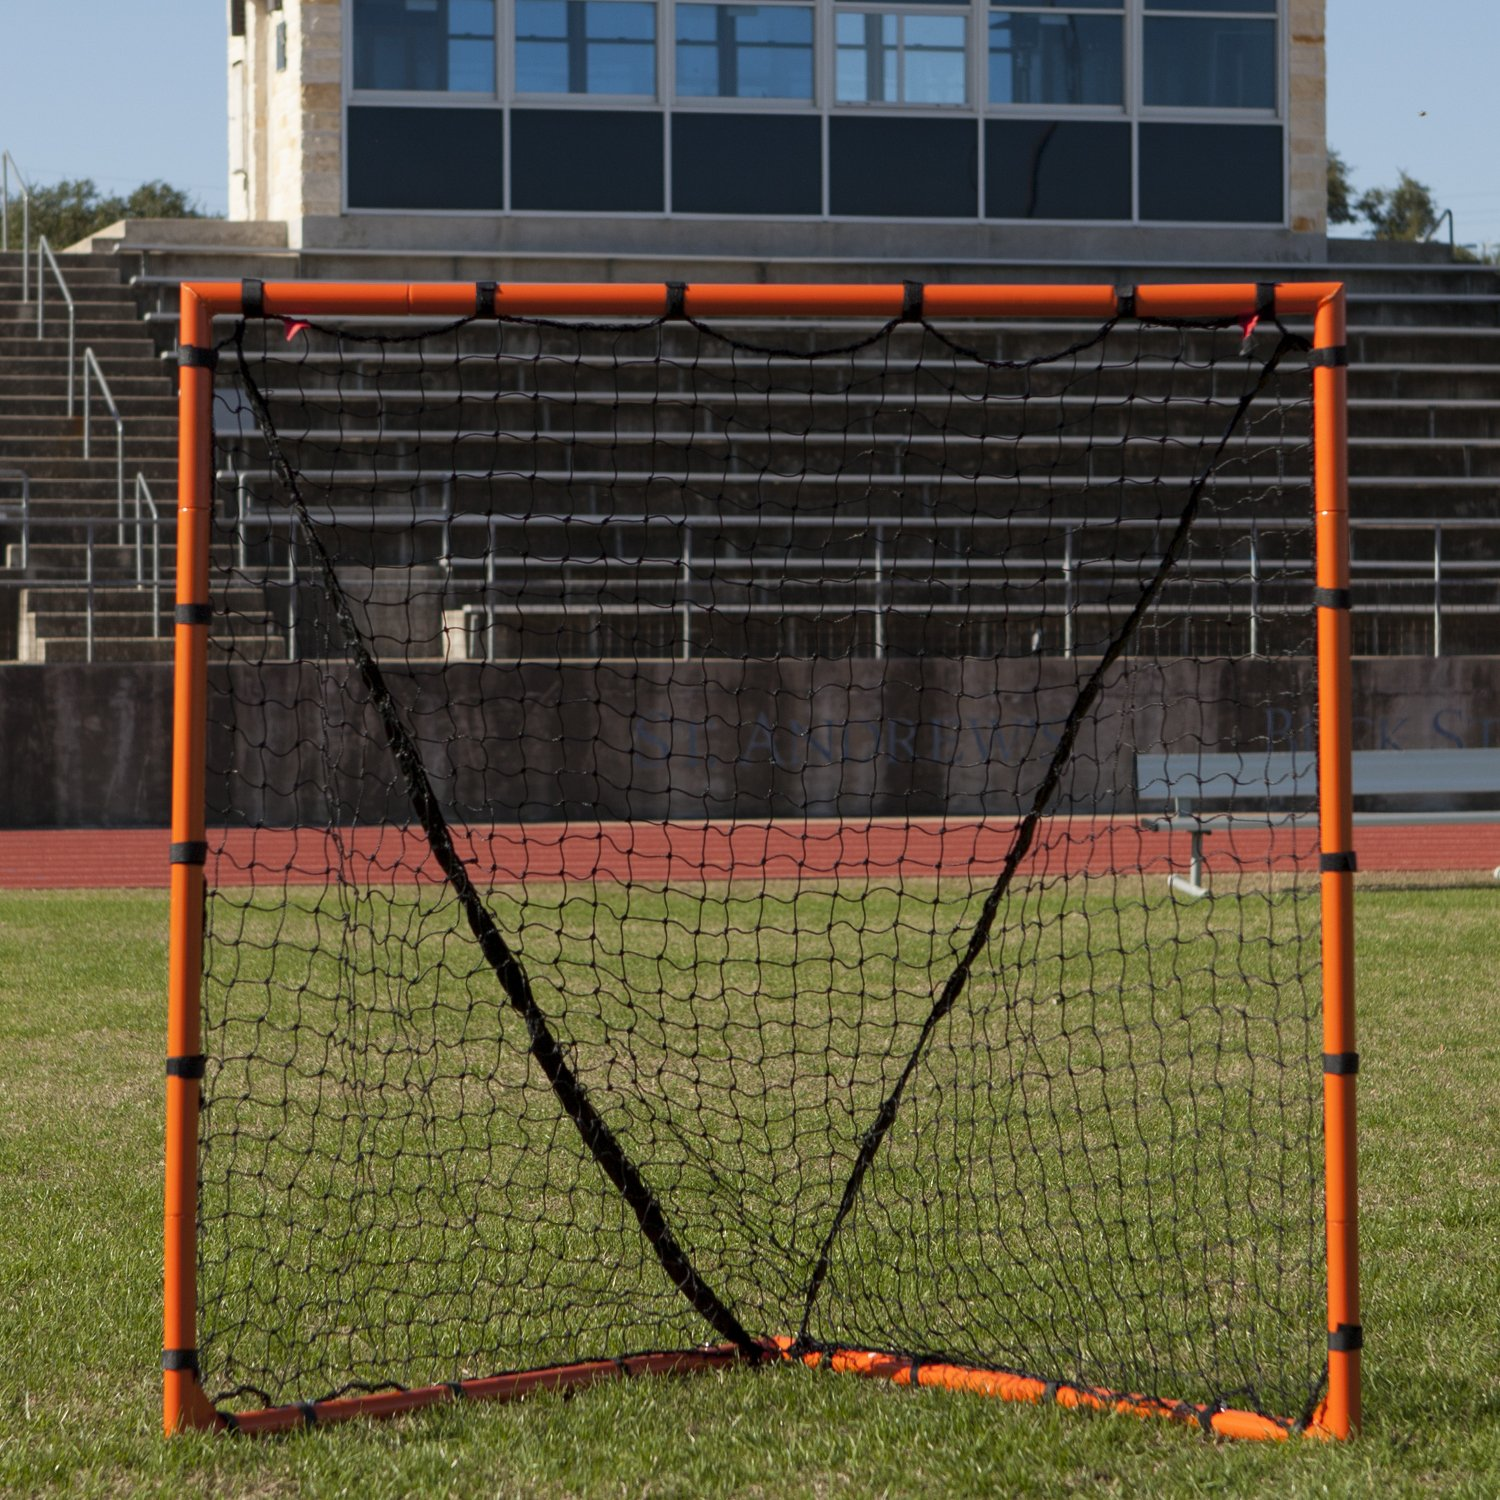 amazon com champion sports backyard lacrosse goal 6x6 boys